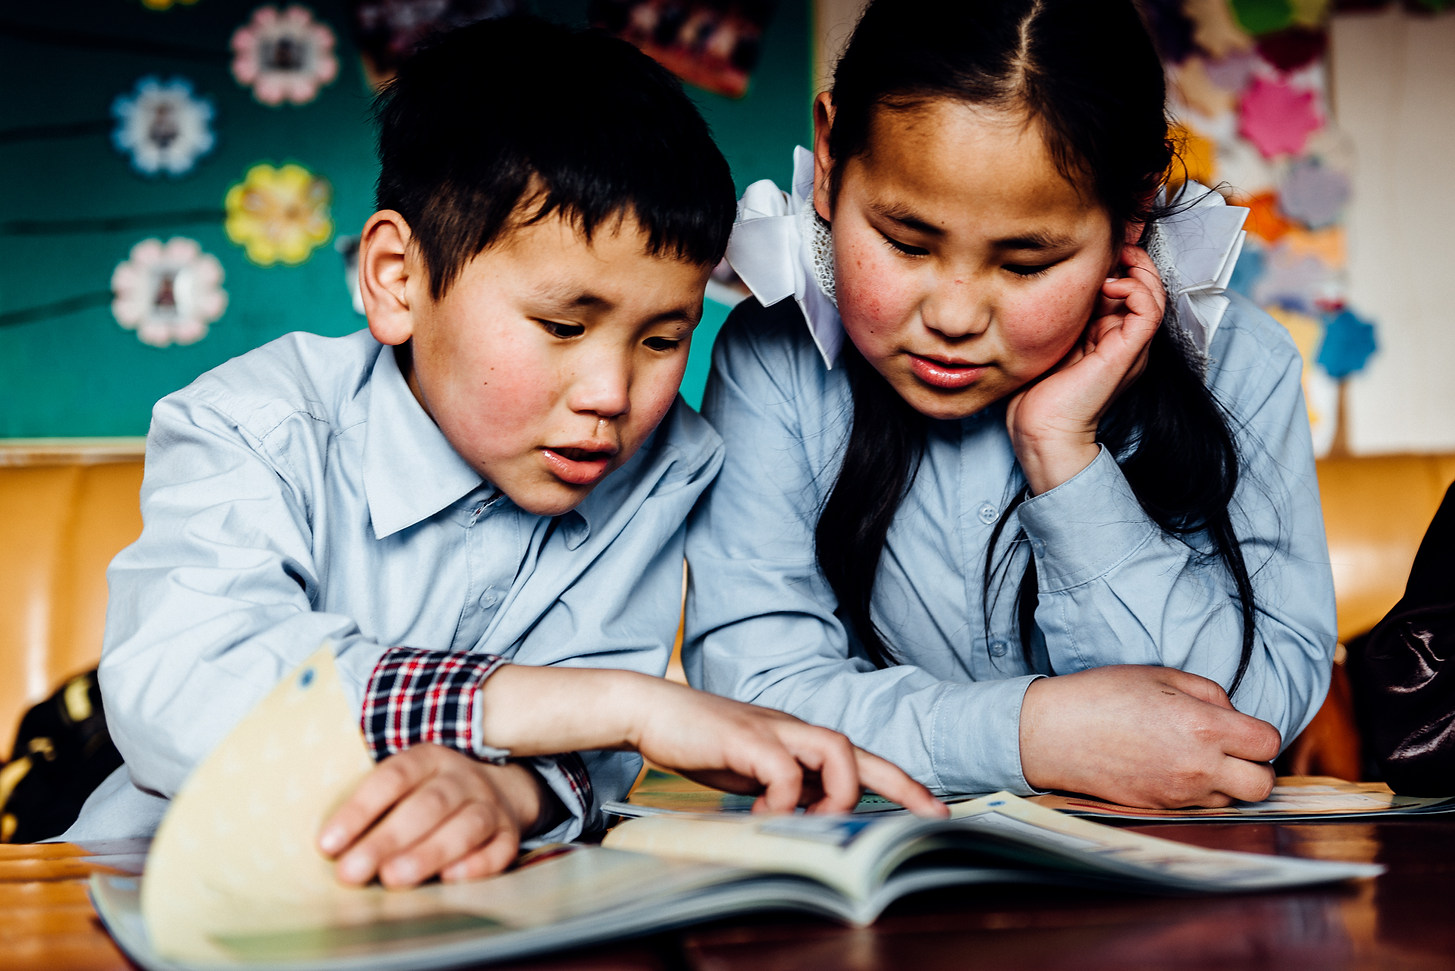 Pupils during class. Outskirts of Ulaanbaatar, Mongolia. Photo: David Vogt